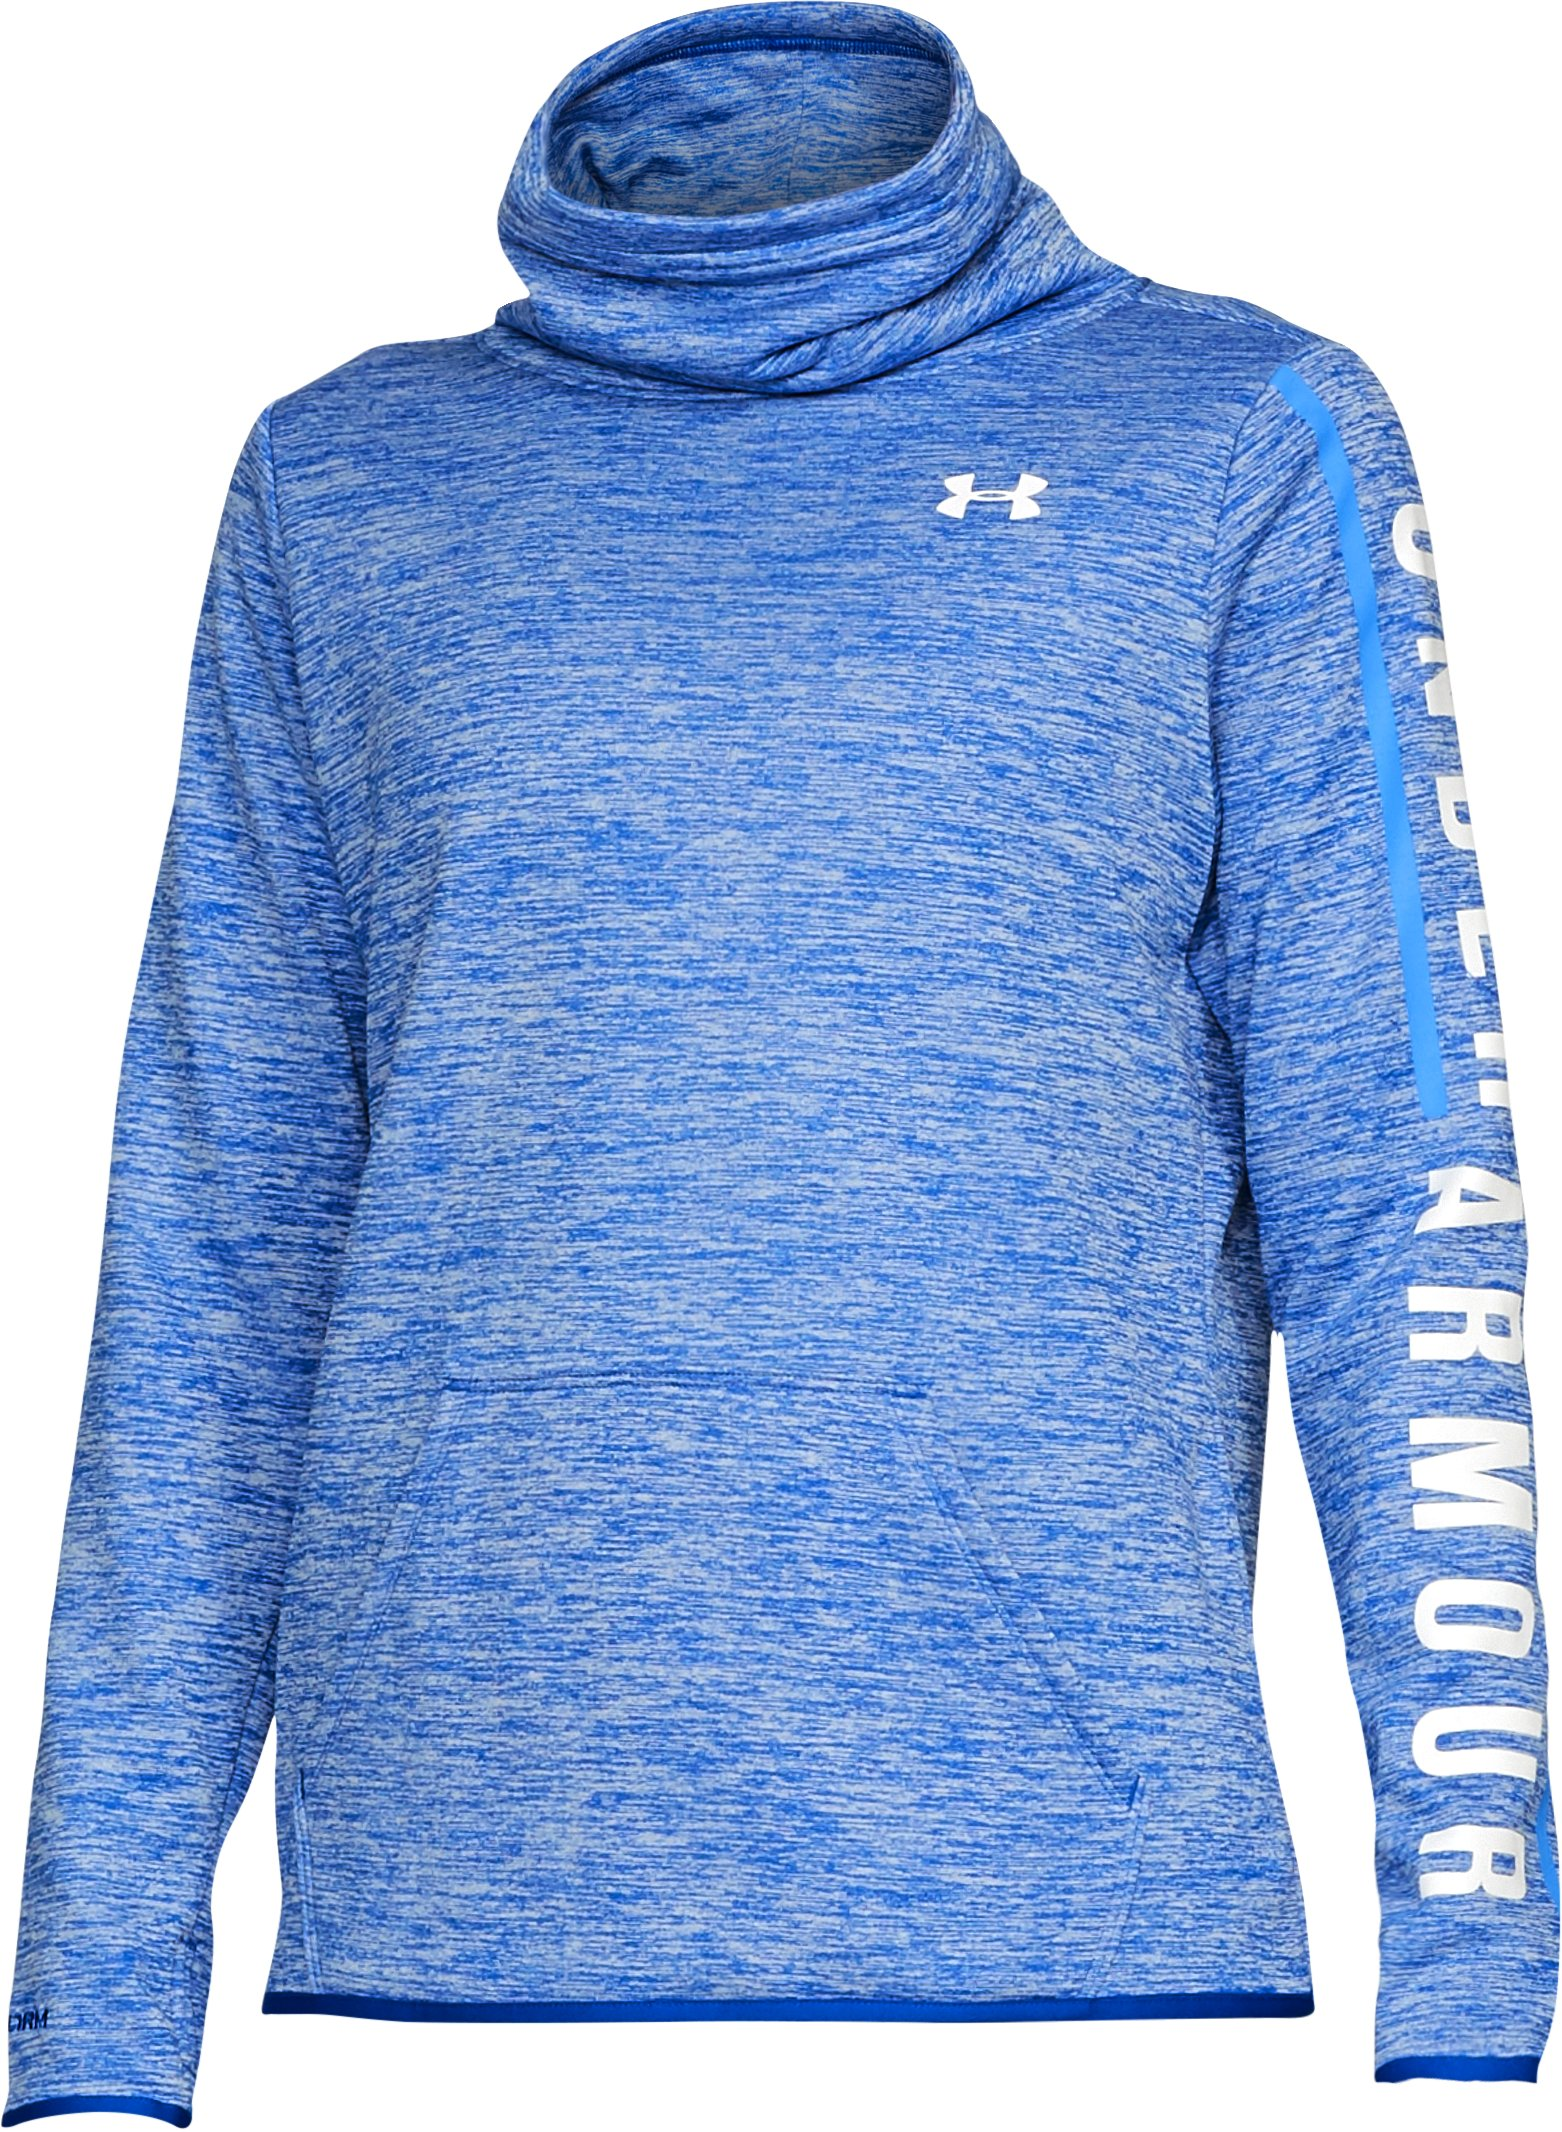 Women's Armour Fleece® Graphic Twist Pullover, LAPIS BLUE,